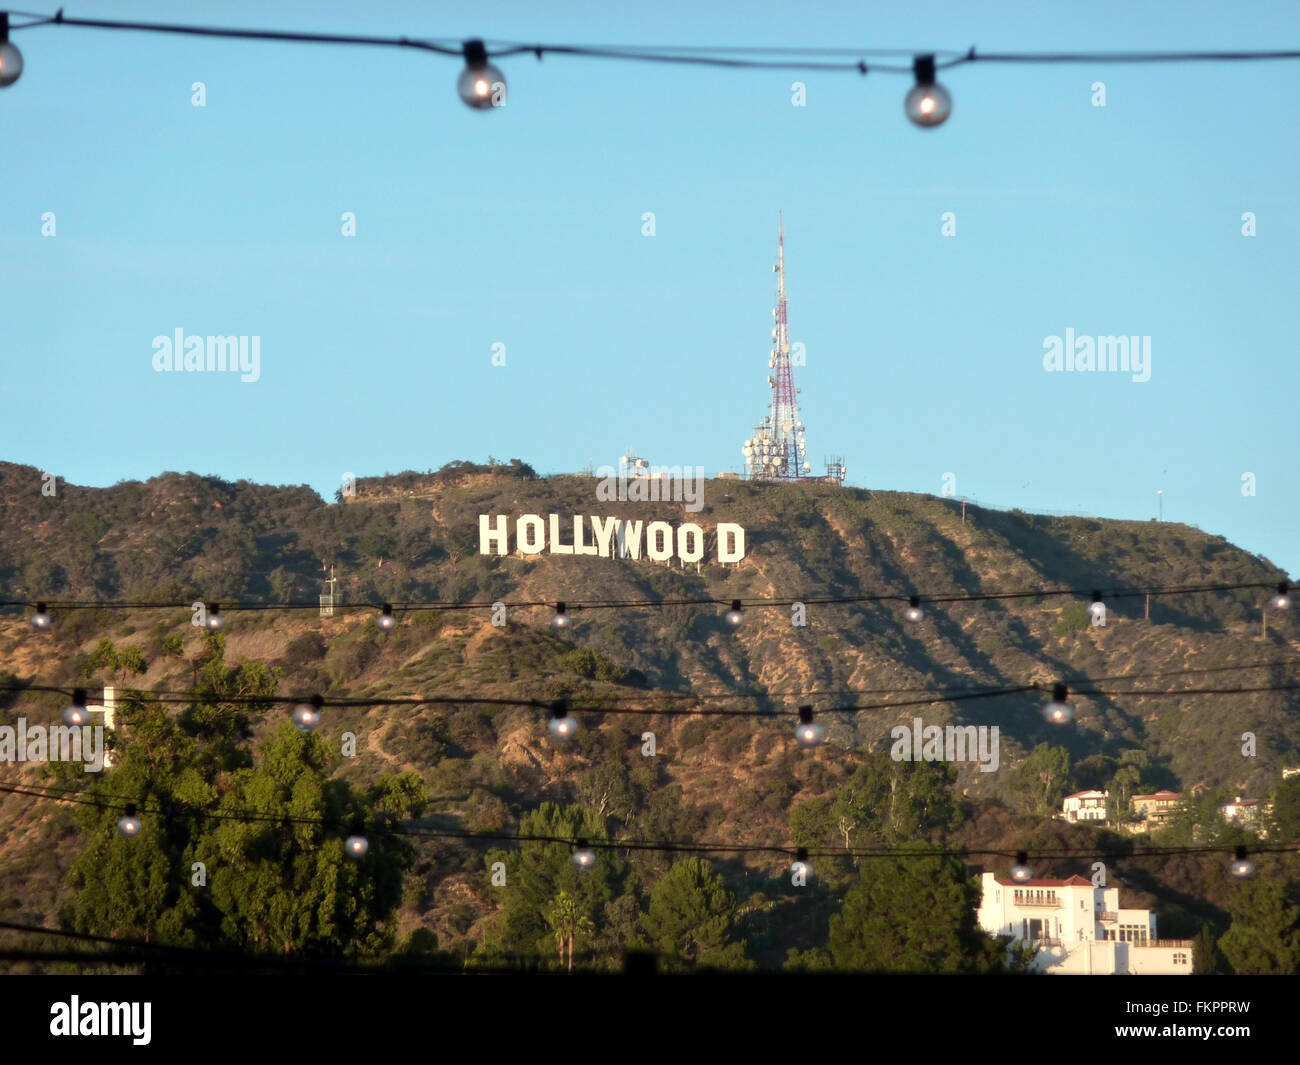 how tall are the hollywood letters sign in capital white letters 14 m and 110 10296 | hollywood sign in capital white letters 14 m tall and 110 m long on FKPPRW